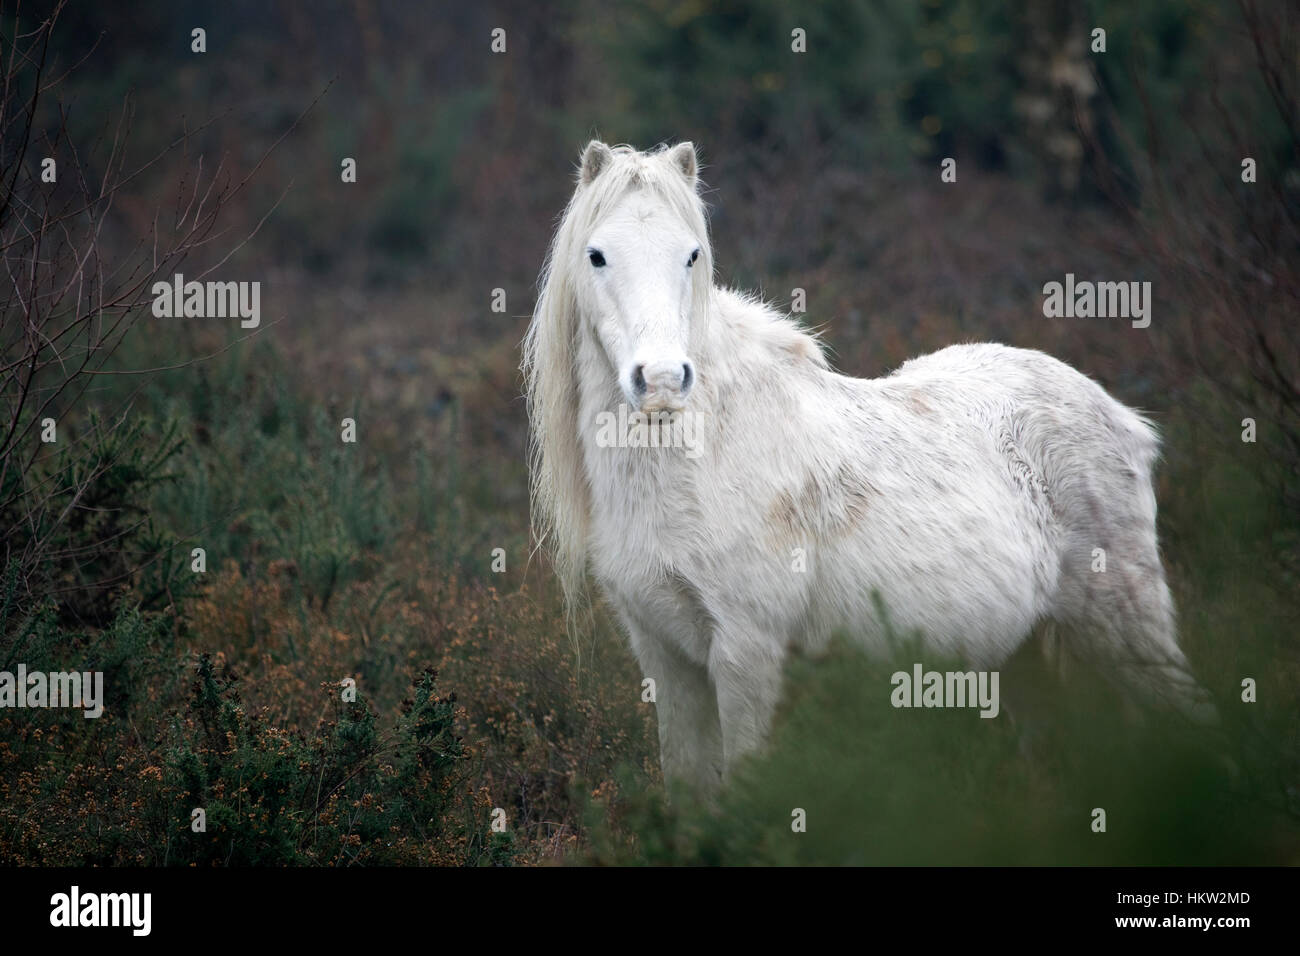 Flintshire, Wales, UK. 30th Jan, 2017. wild Welsh ponies accustomed to the damp foggy conditions in the foothills - Stock Image